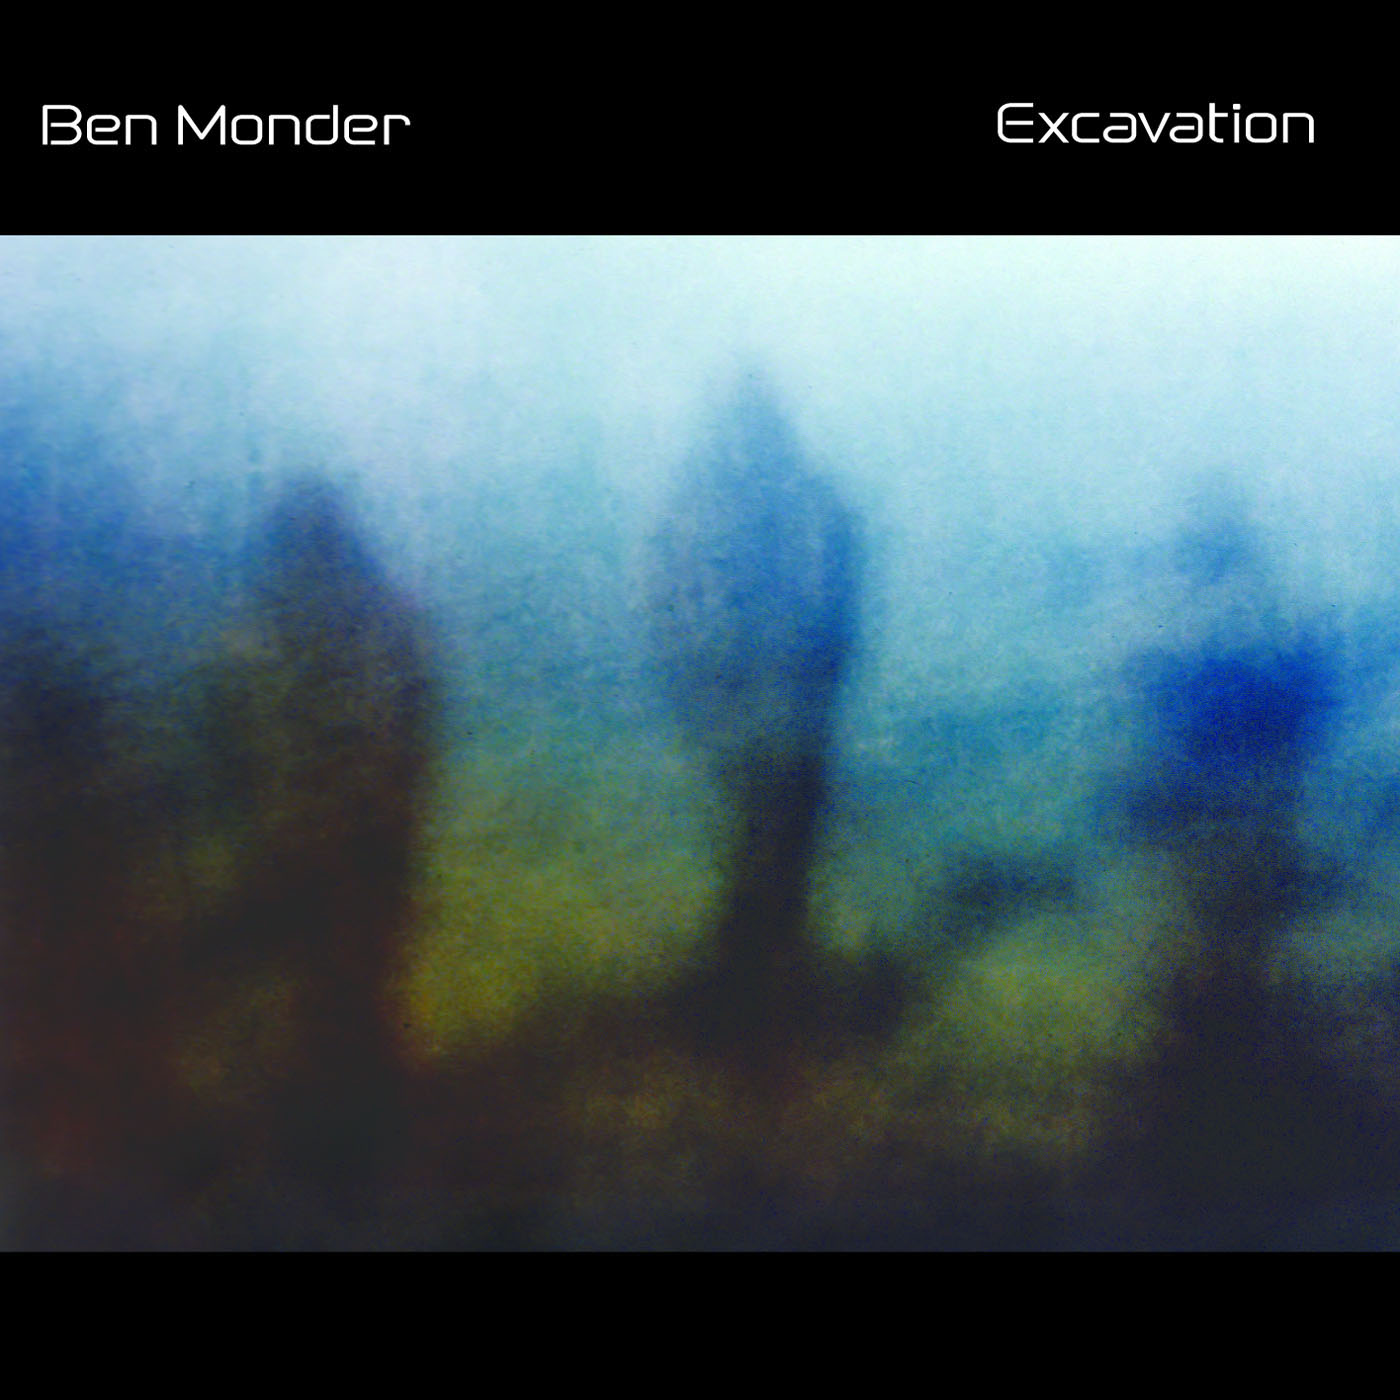 Excavation by Ben Monder cover